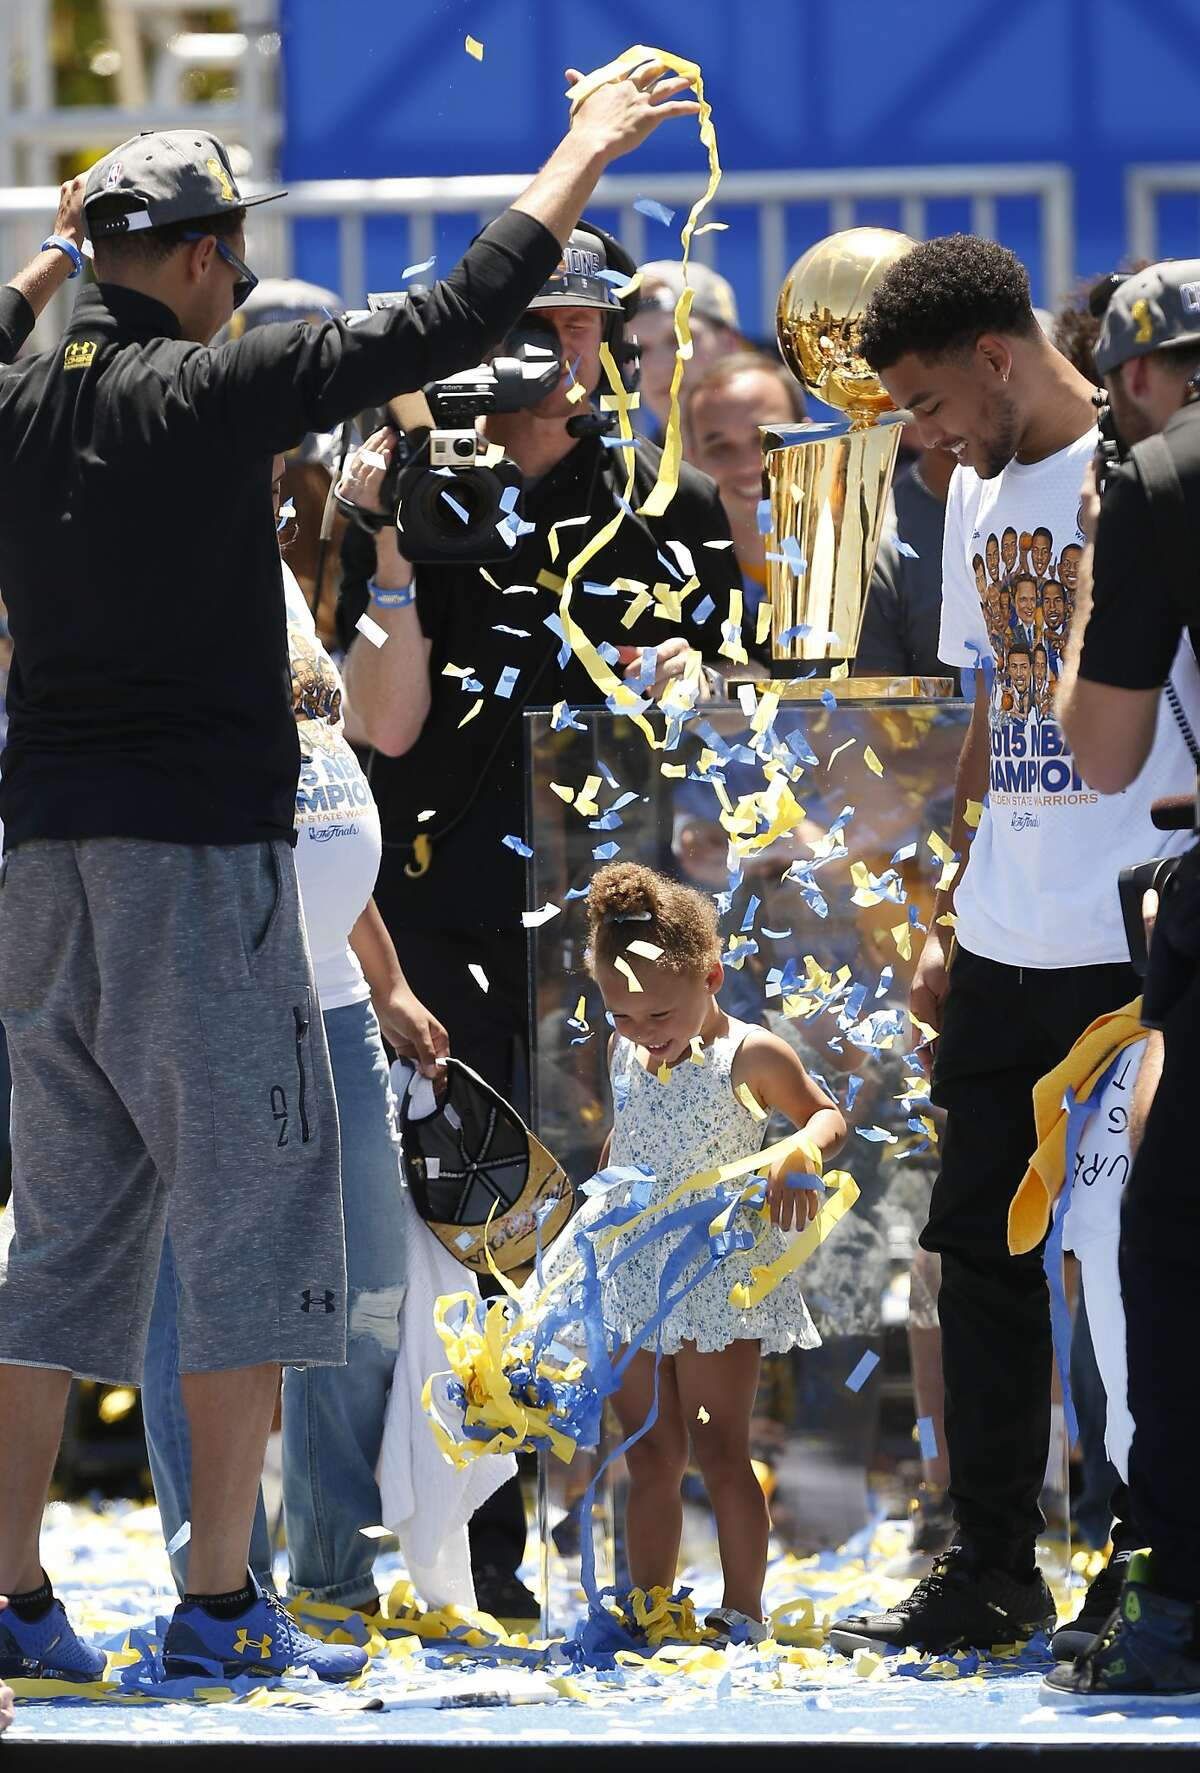 Golden State Warriors' Stephen Curry drops confetti on his daughter, Riley, during the NBA Champions rally at the Henry J. Kaiser Convention Center on Friday, June 19, 2015 in Oakland, Calif.